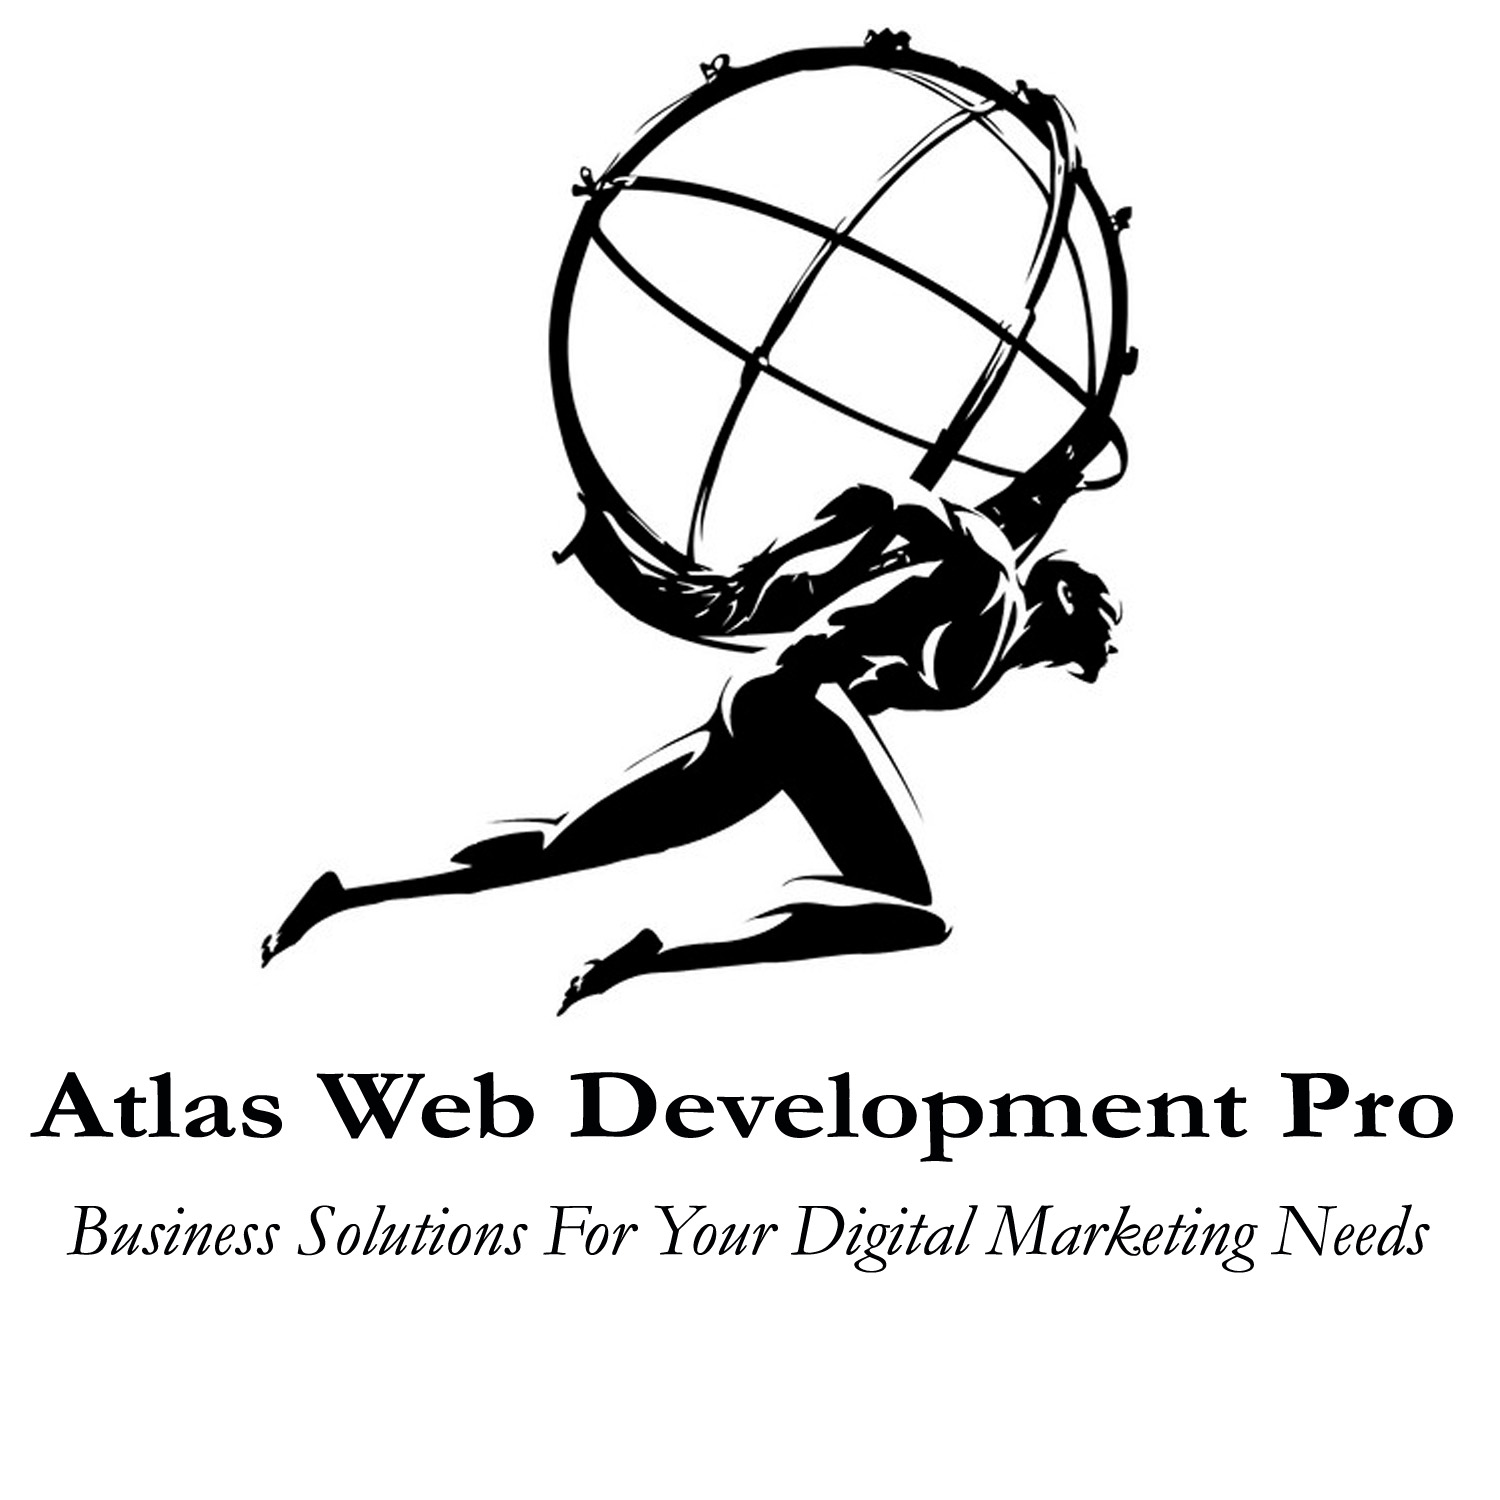 Atlas Web Development Pro